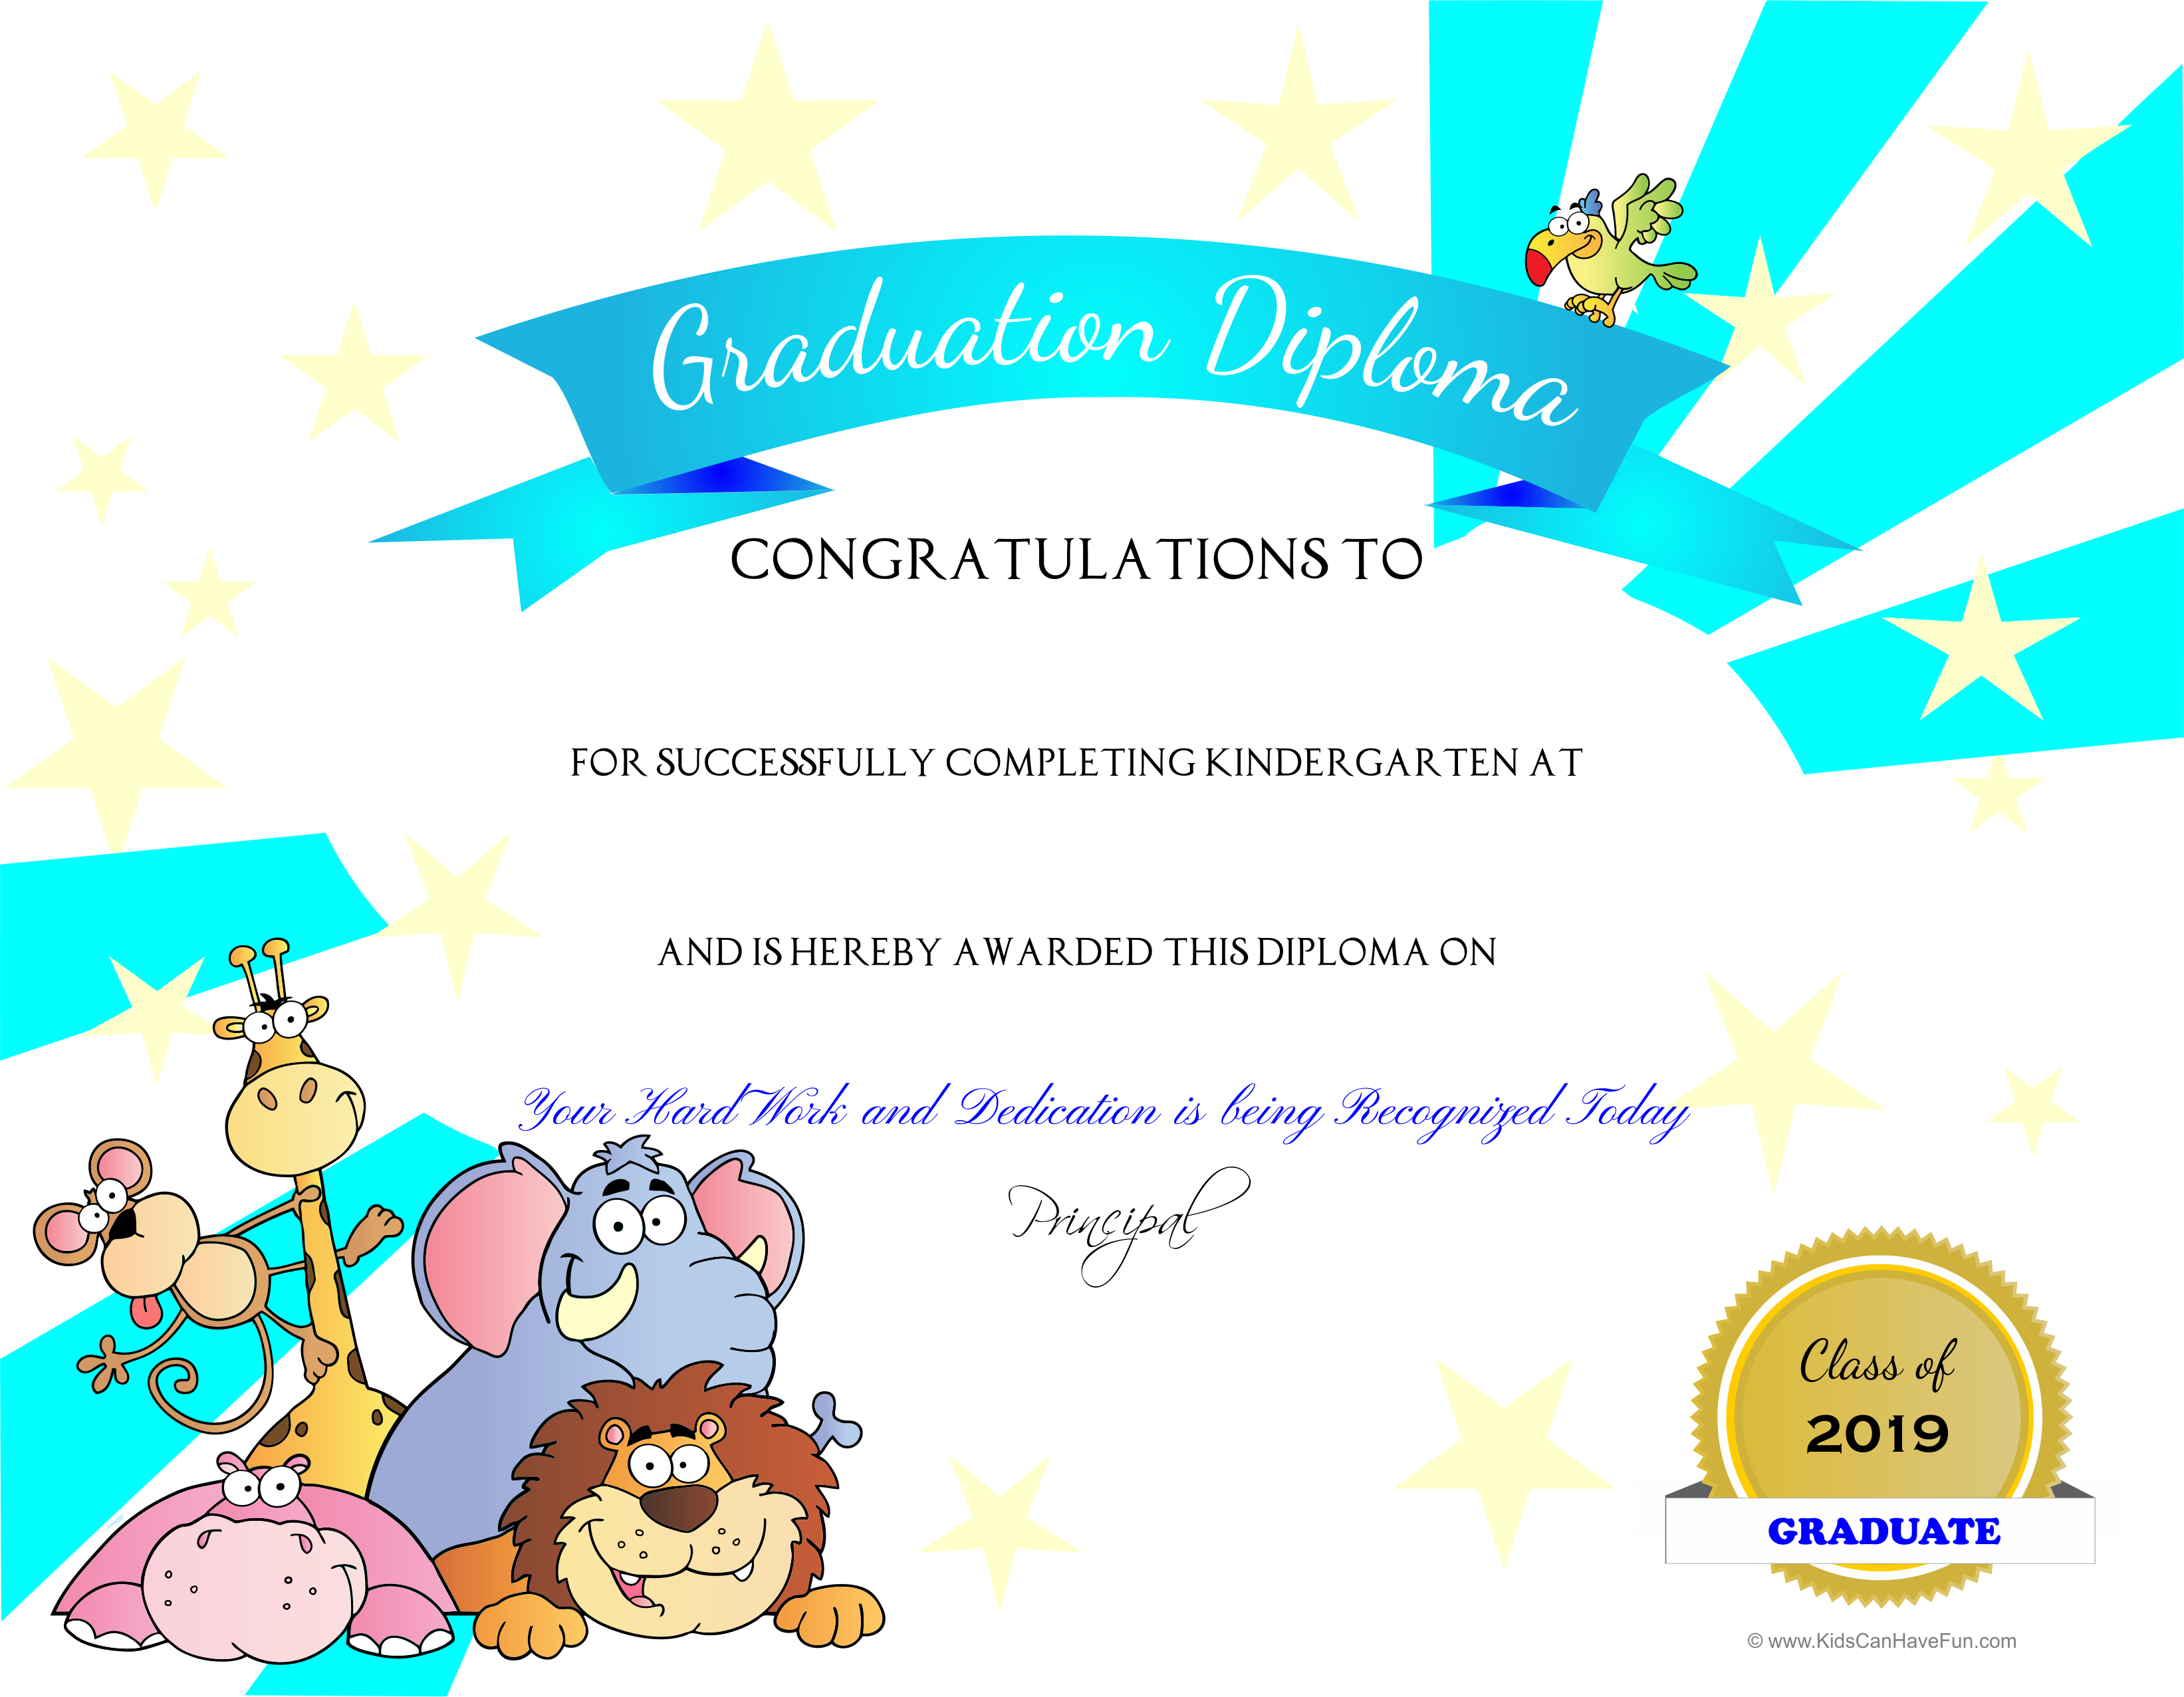 Kindergarten Jungle Animals Graduation Diploma With White